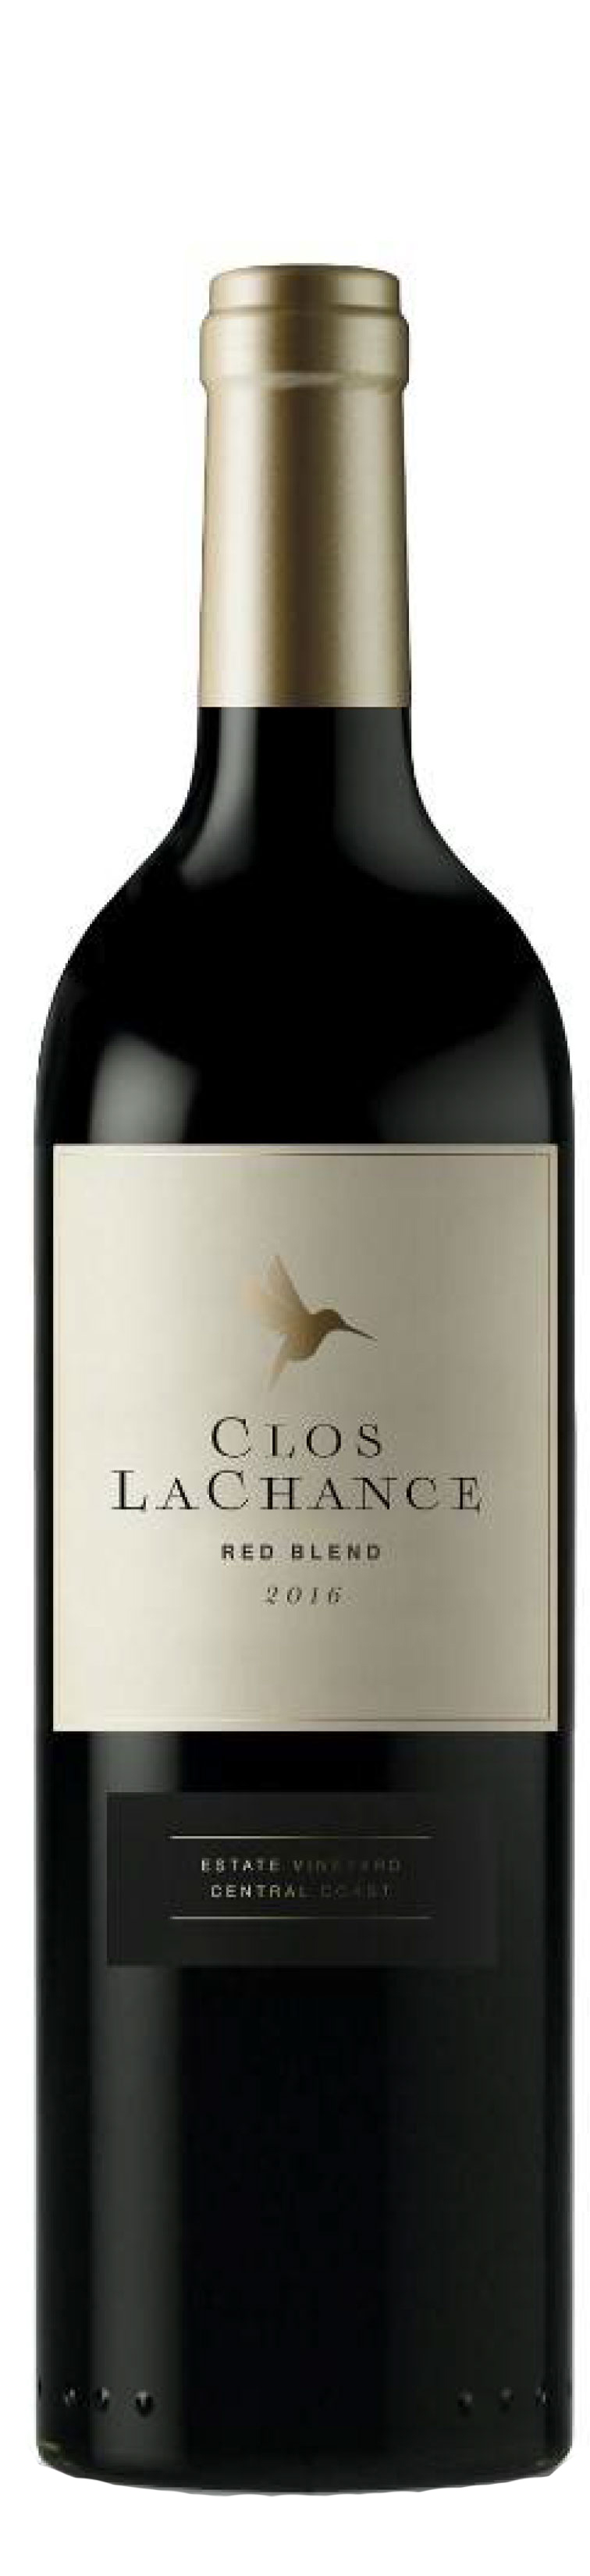 Clos laChance Red Wine